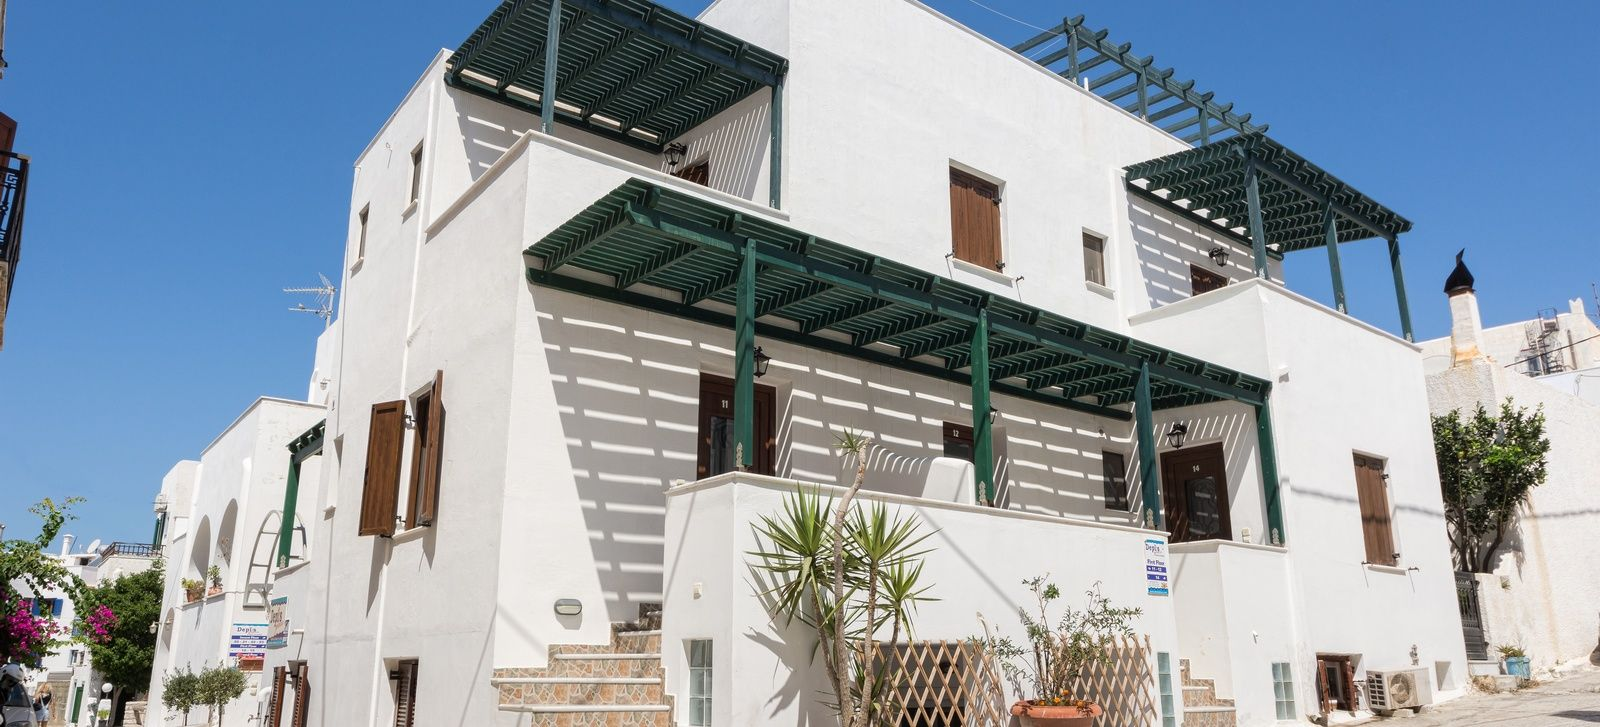 Depis Place and Apartments - Νάξος ✦ 2 Ημέρες (1 Διανυκτέρευση) ✦ 2 άτομα ✦ Χωρίς Πρωινό ✦ 01/09/2020 έως 30/09/2020 ✦ Κοντά στην Παραλία!